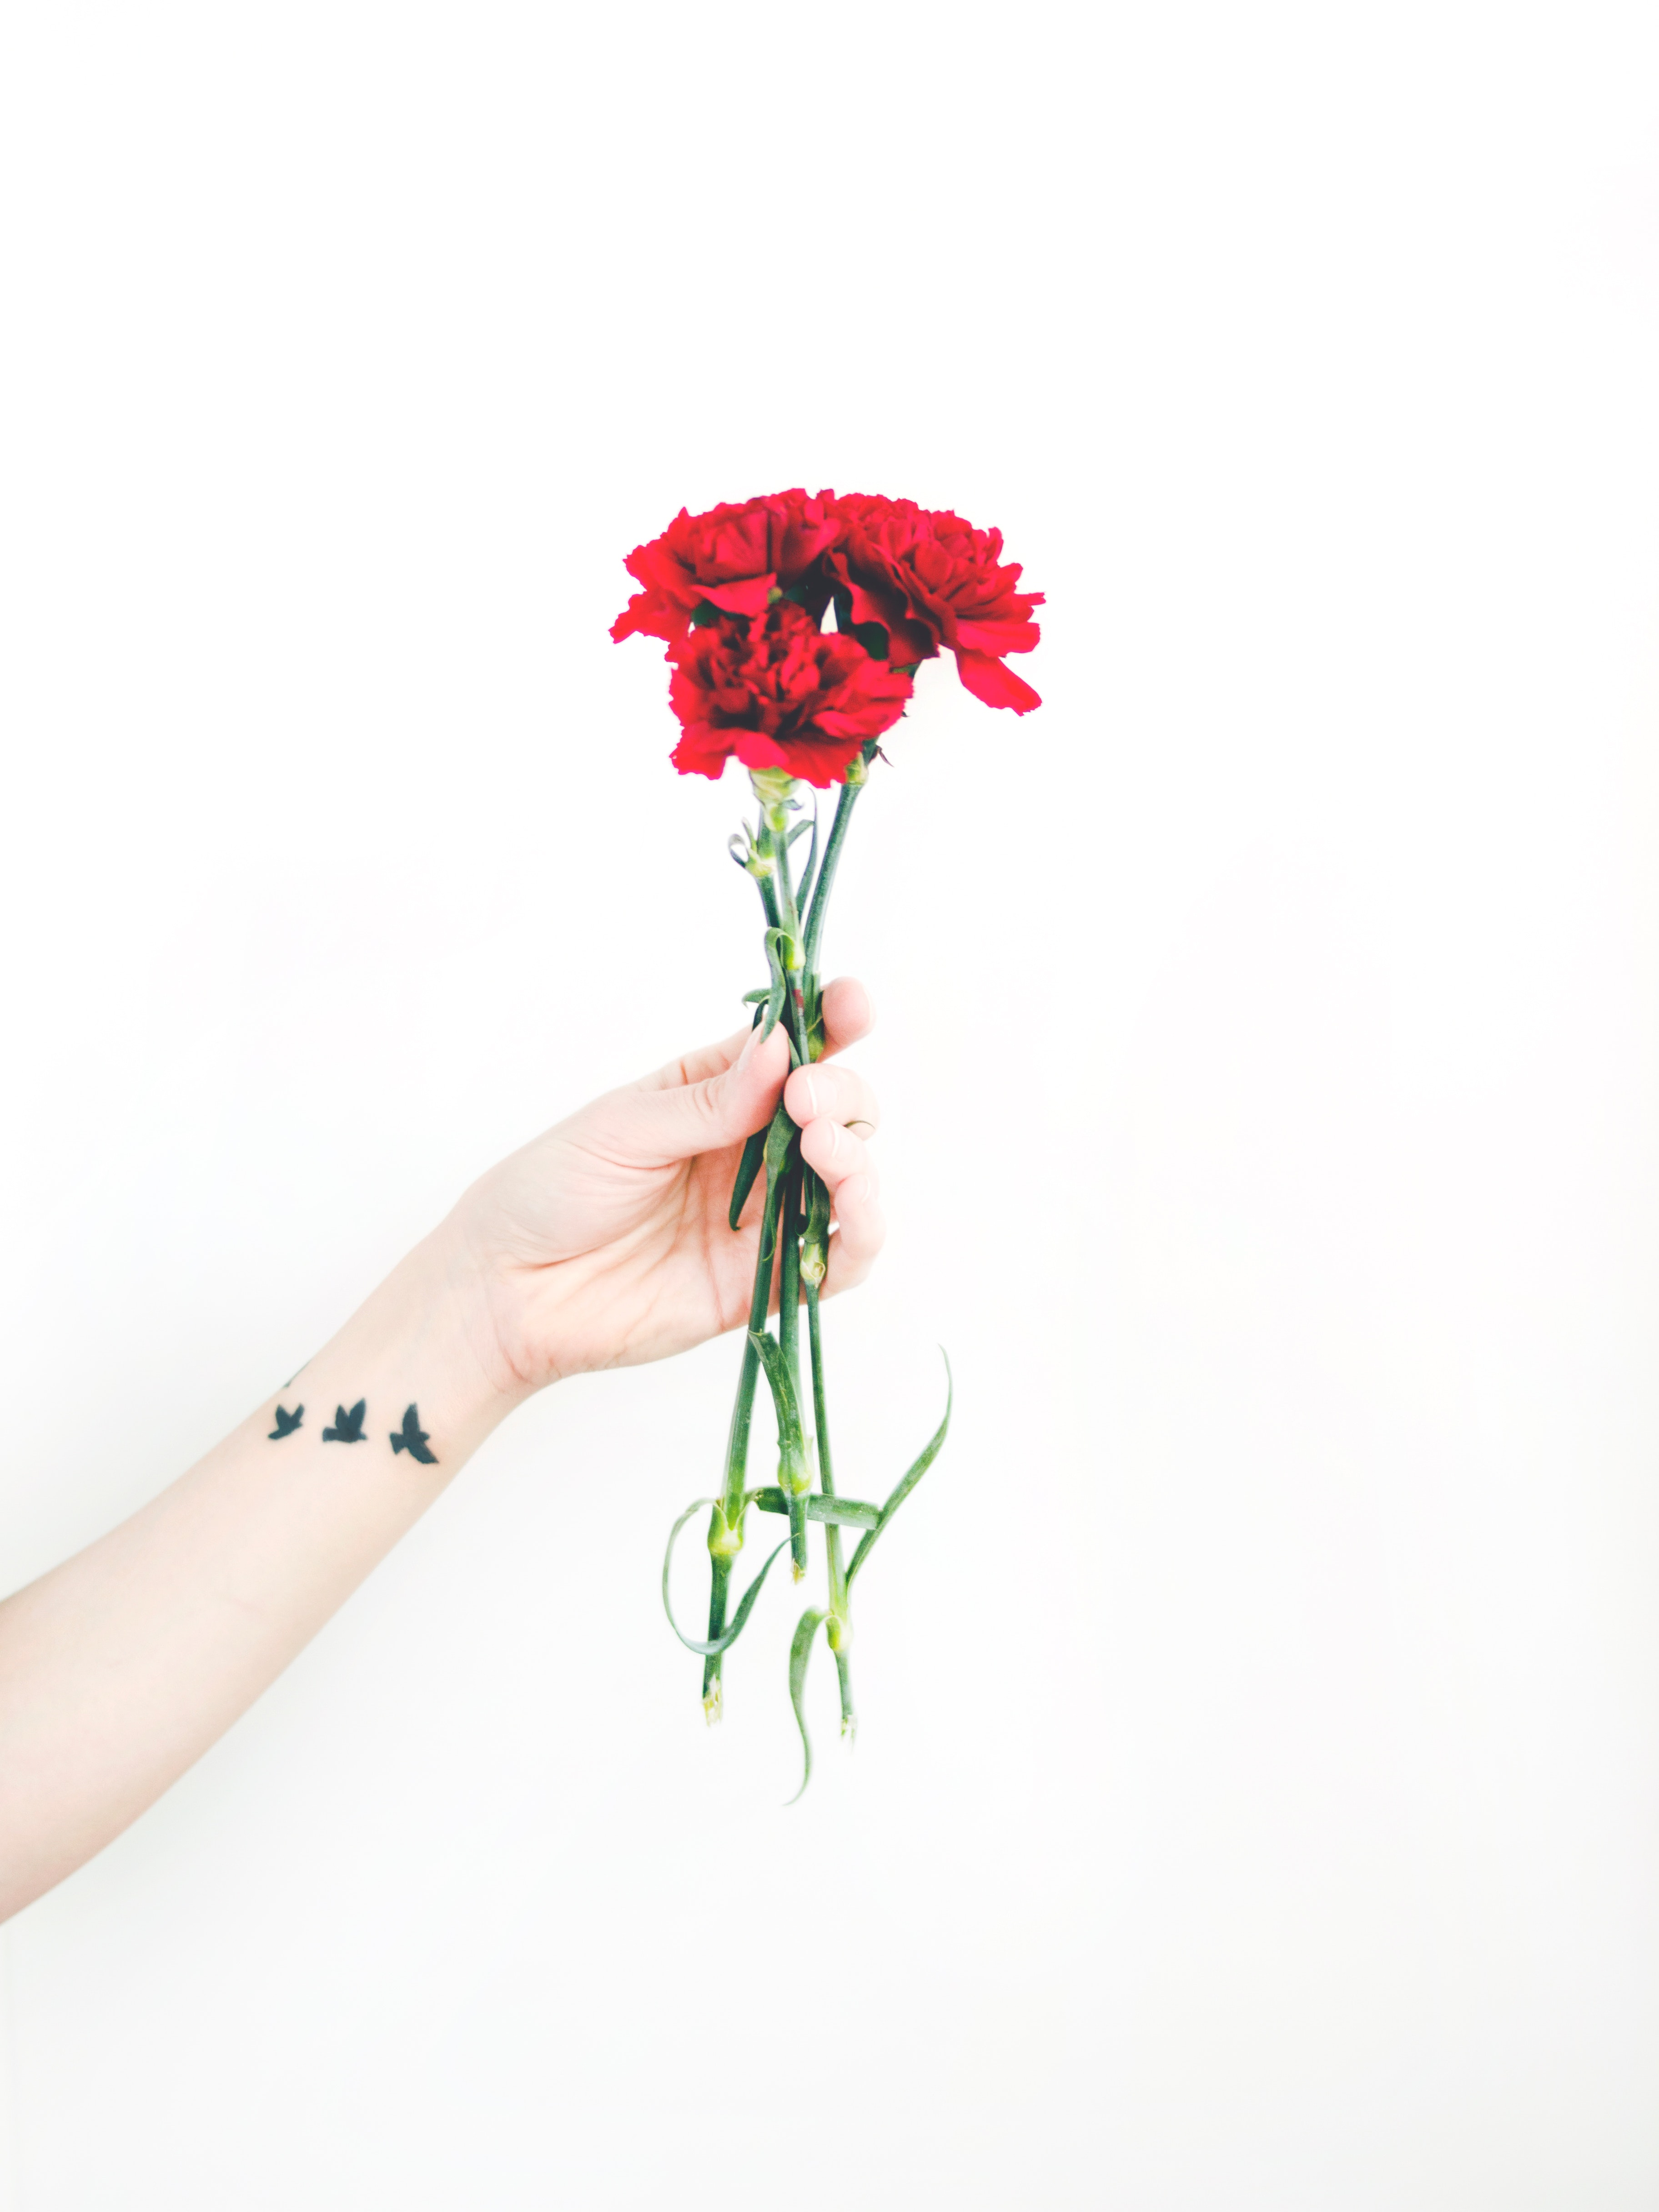 Free photo photo of person holding bouquet of red carnations photo of person holding bouquet of red carnations fresh flowers flowers focus izmirmasajfo